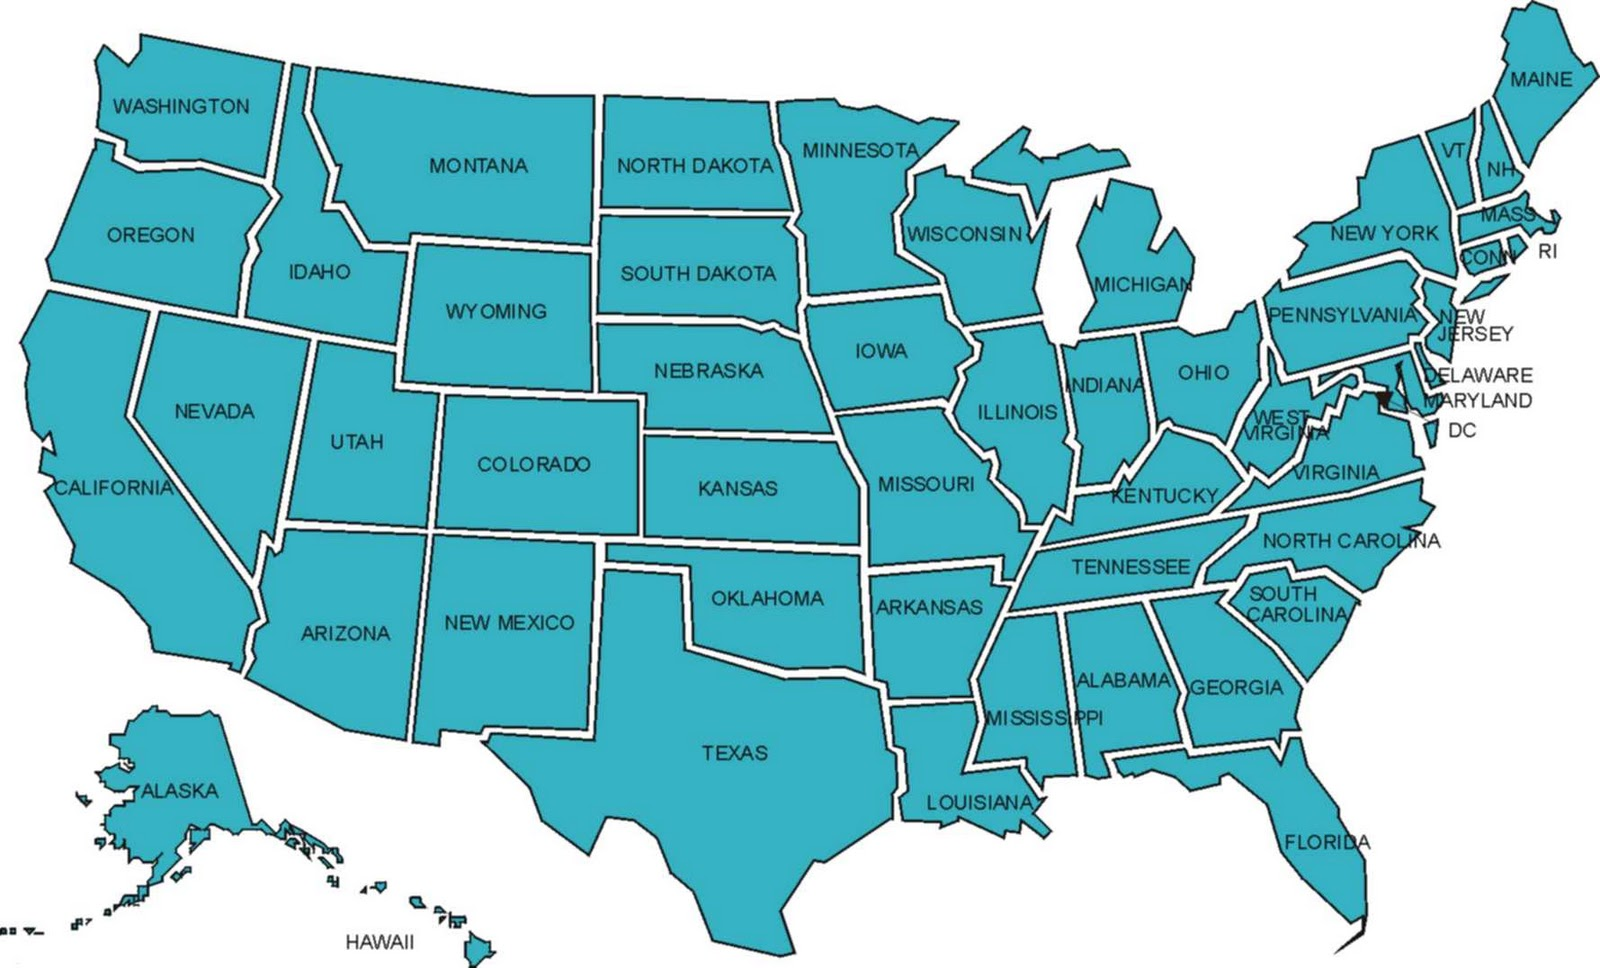 ... Central United States Map. on united states midwest region blank map